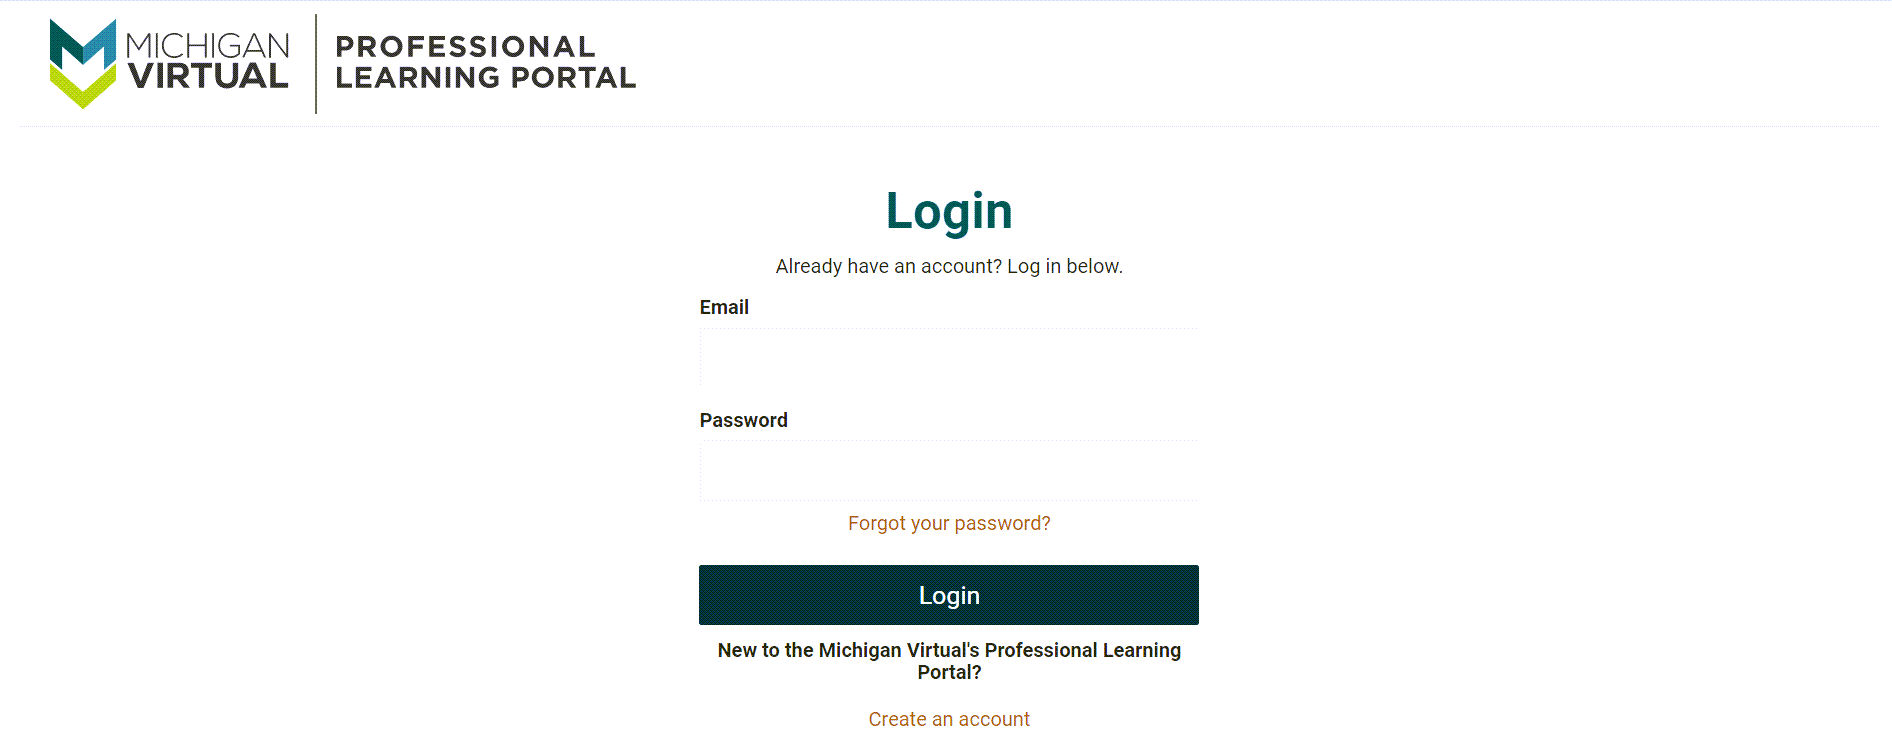 The PLP login page is shown with Email and Password fields. Along with forgot your password and create an account links. Below also is the login button.